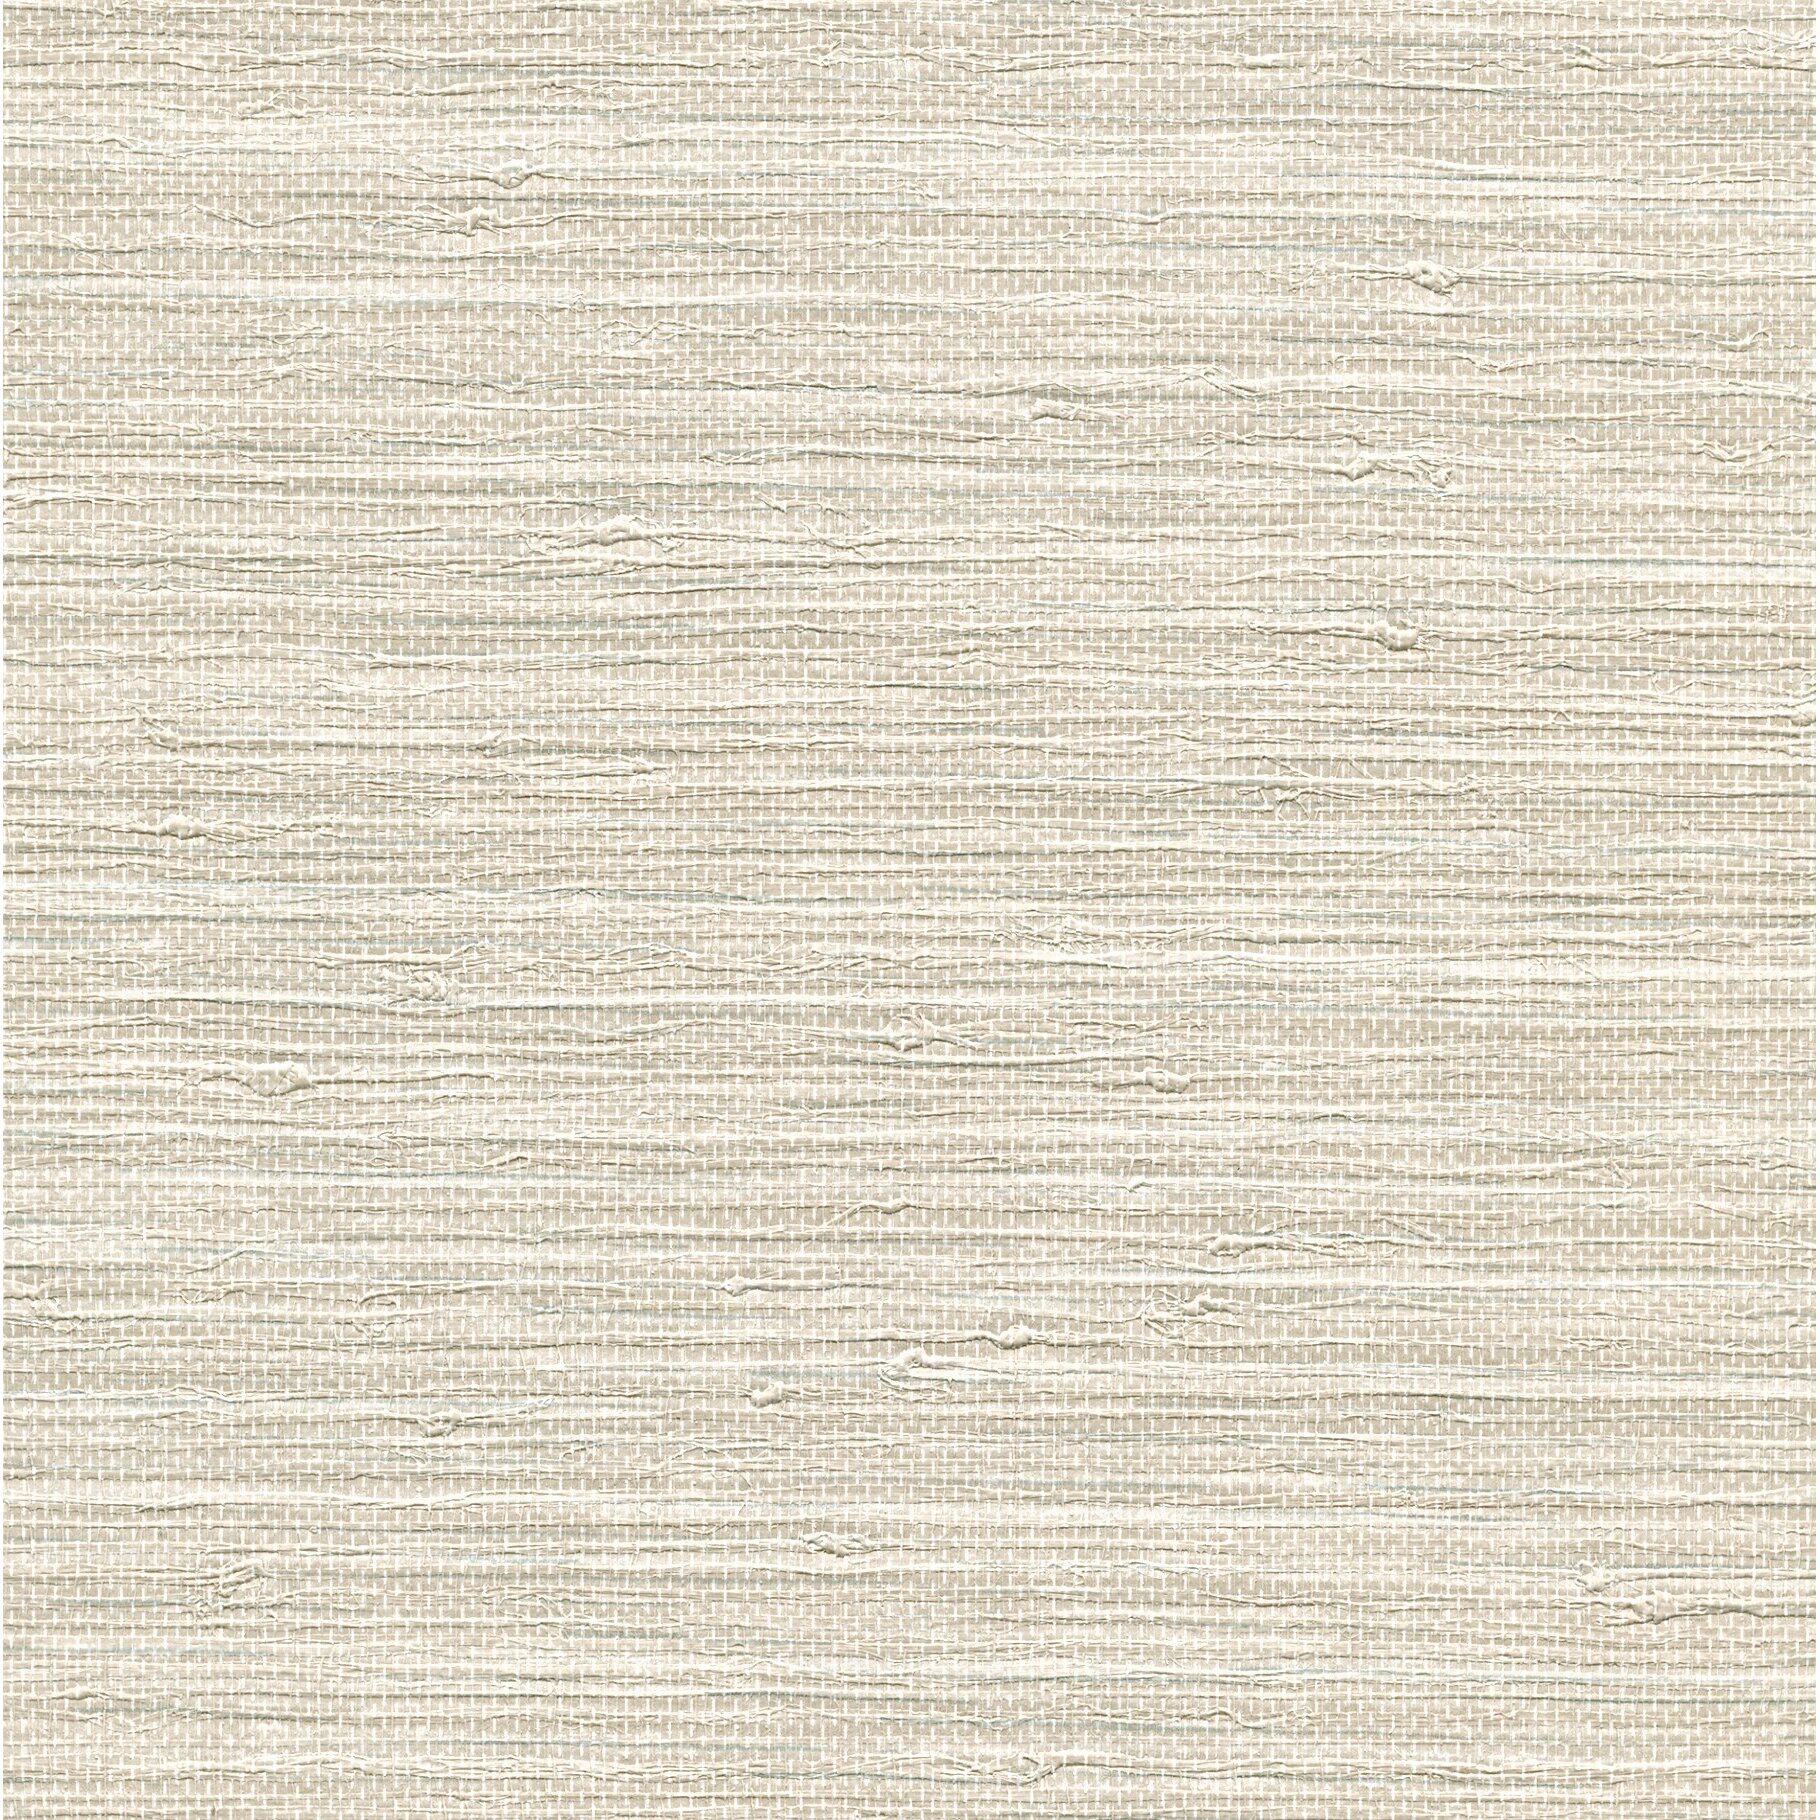 Faux Grasscloth Wallpaper: Brewster Home Fashions Warner Keisling Faux Grasscloth 0